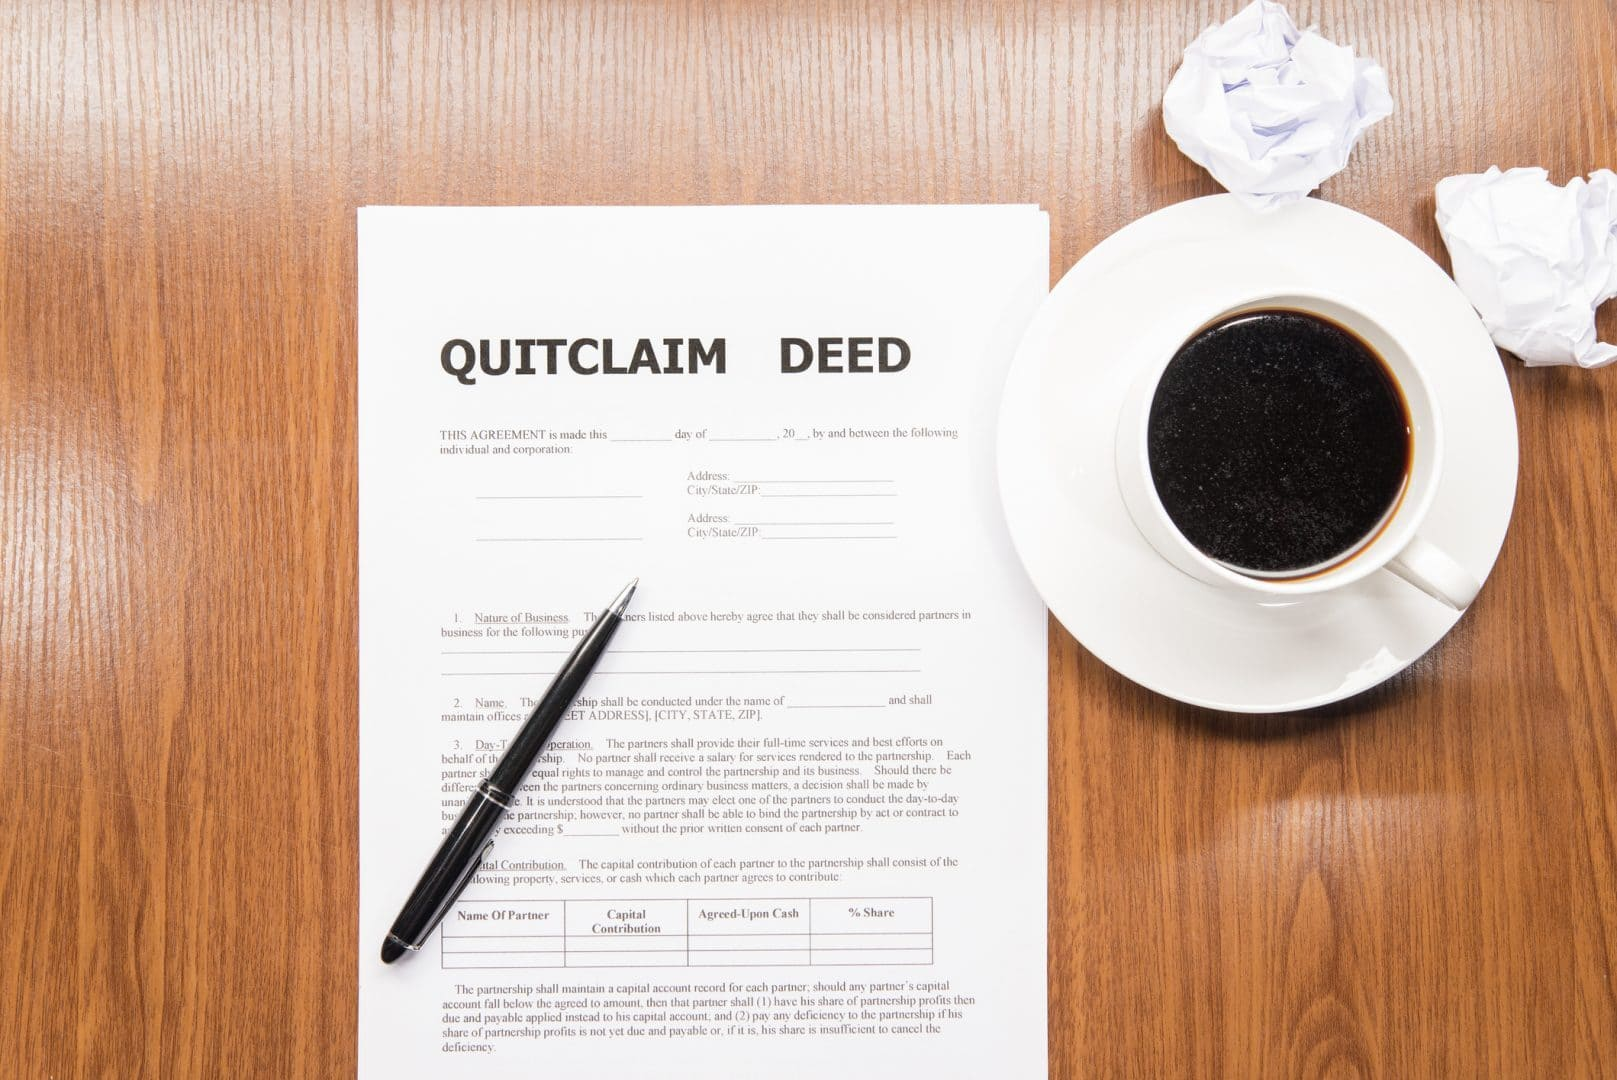 Can't Afford a Mortgage Due to Divorce Quitclaim Deed in Minnesota